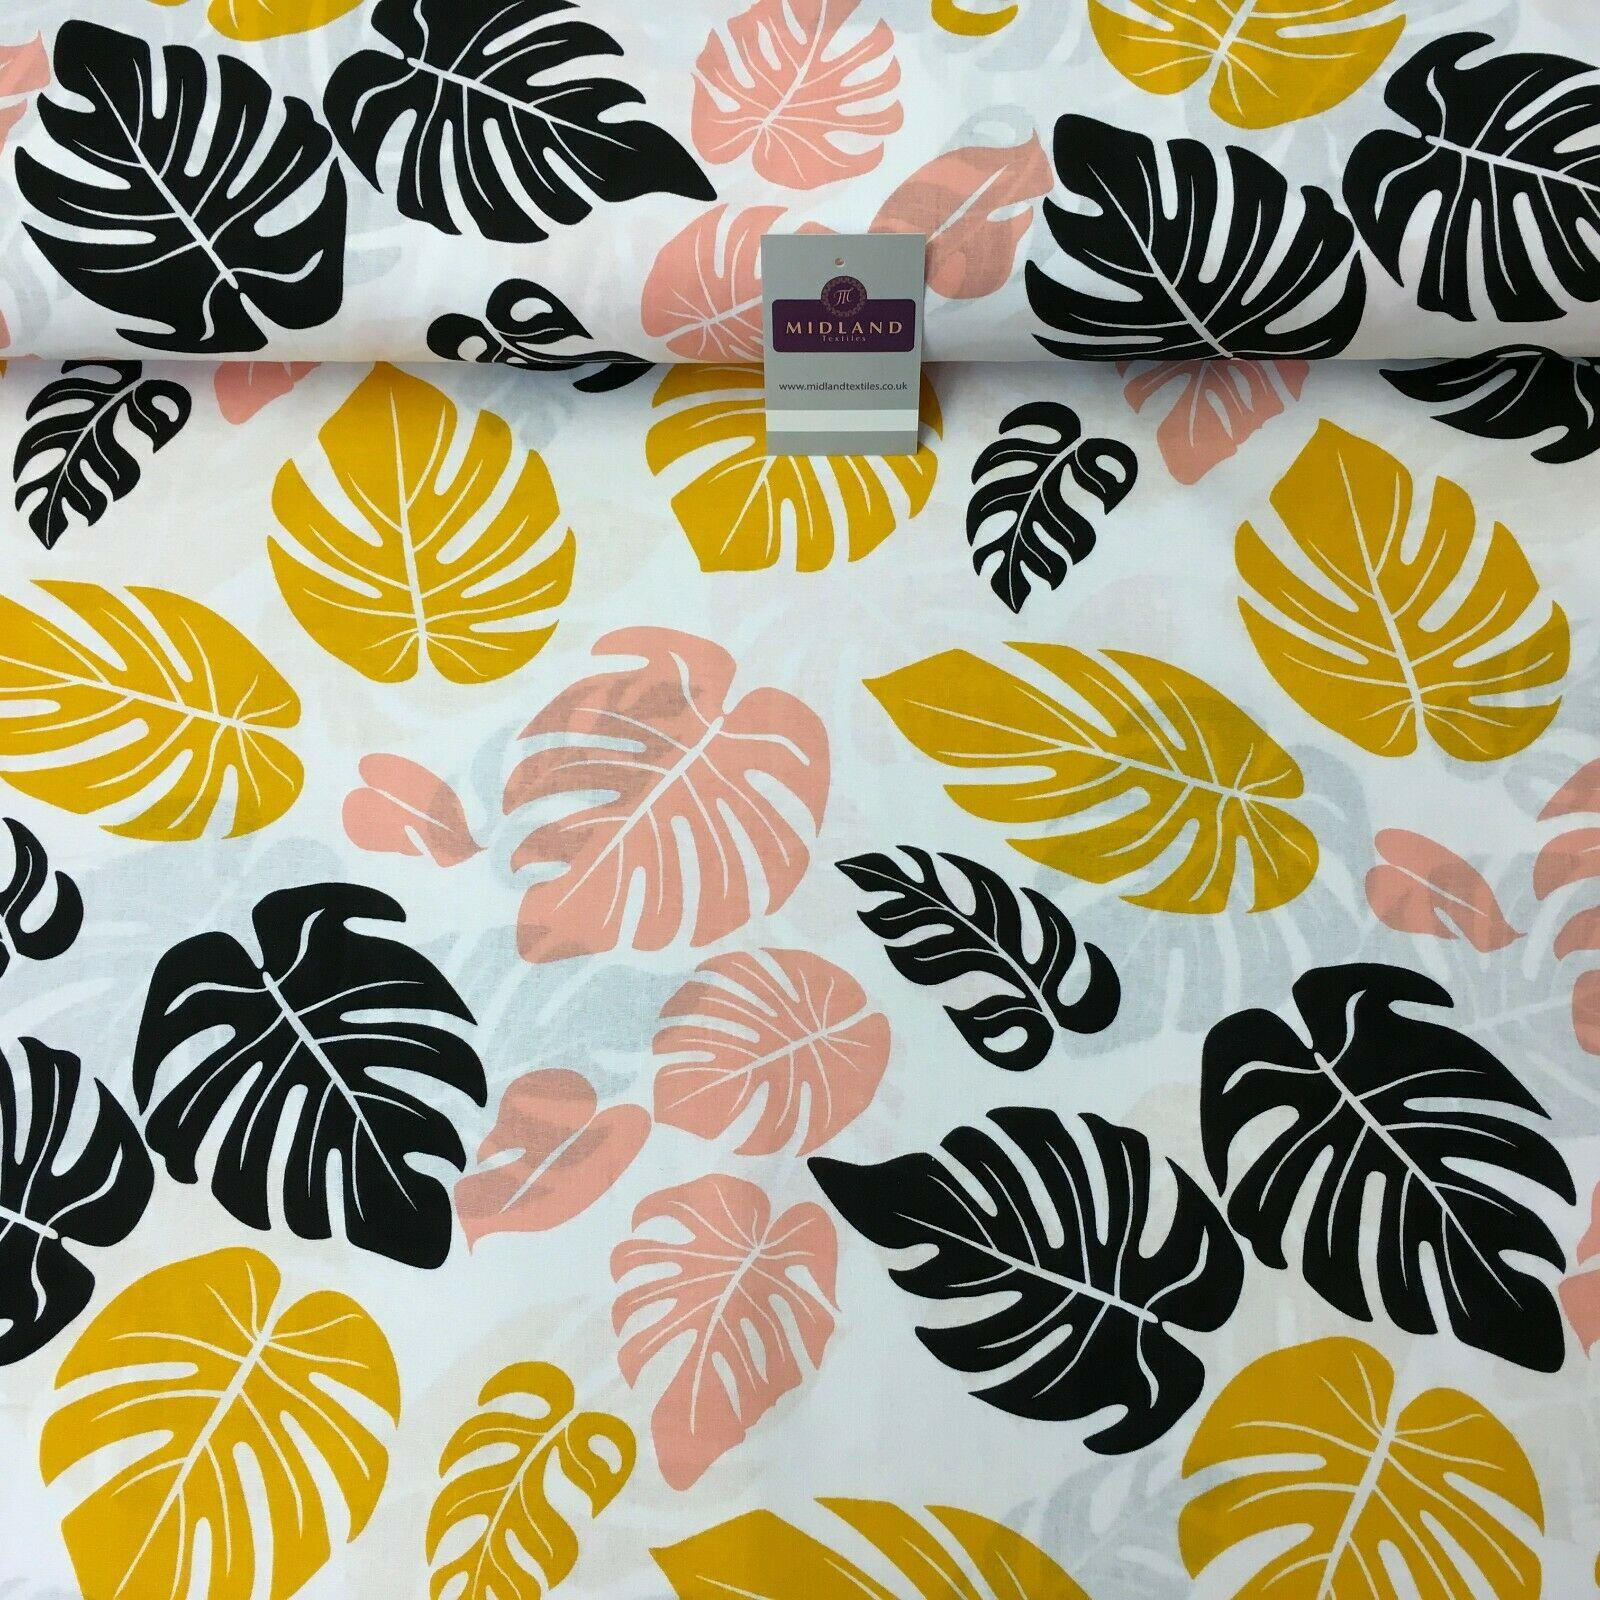 Mango Peach Leaf Printed Cotton Linen Dress Fabric 150cm Wide MK1086-14